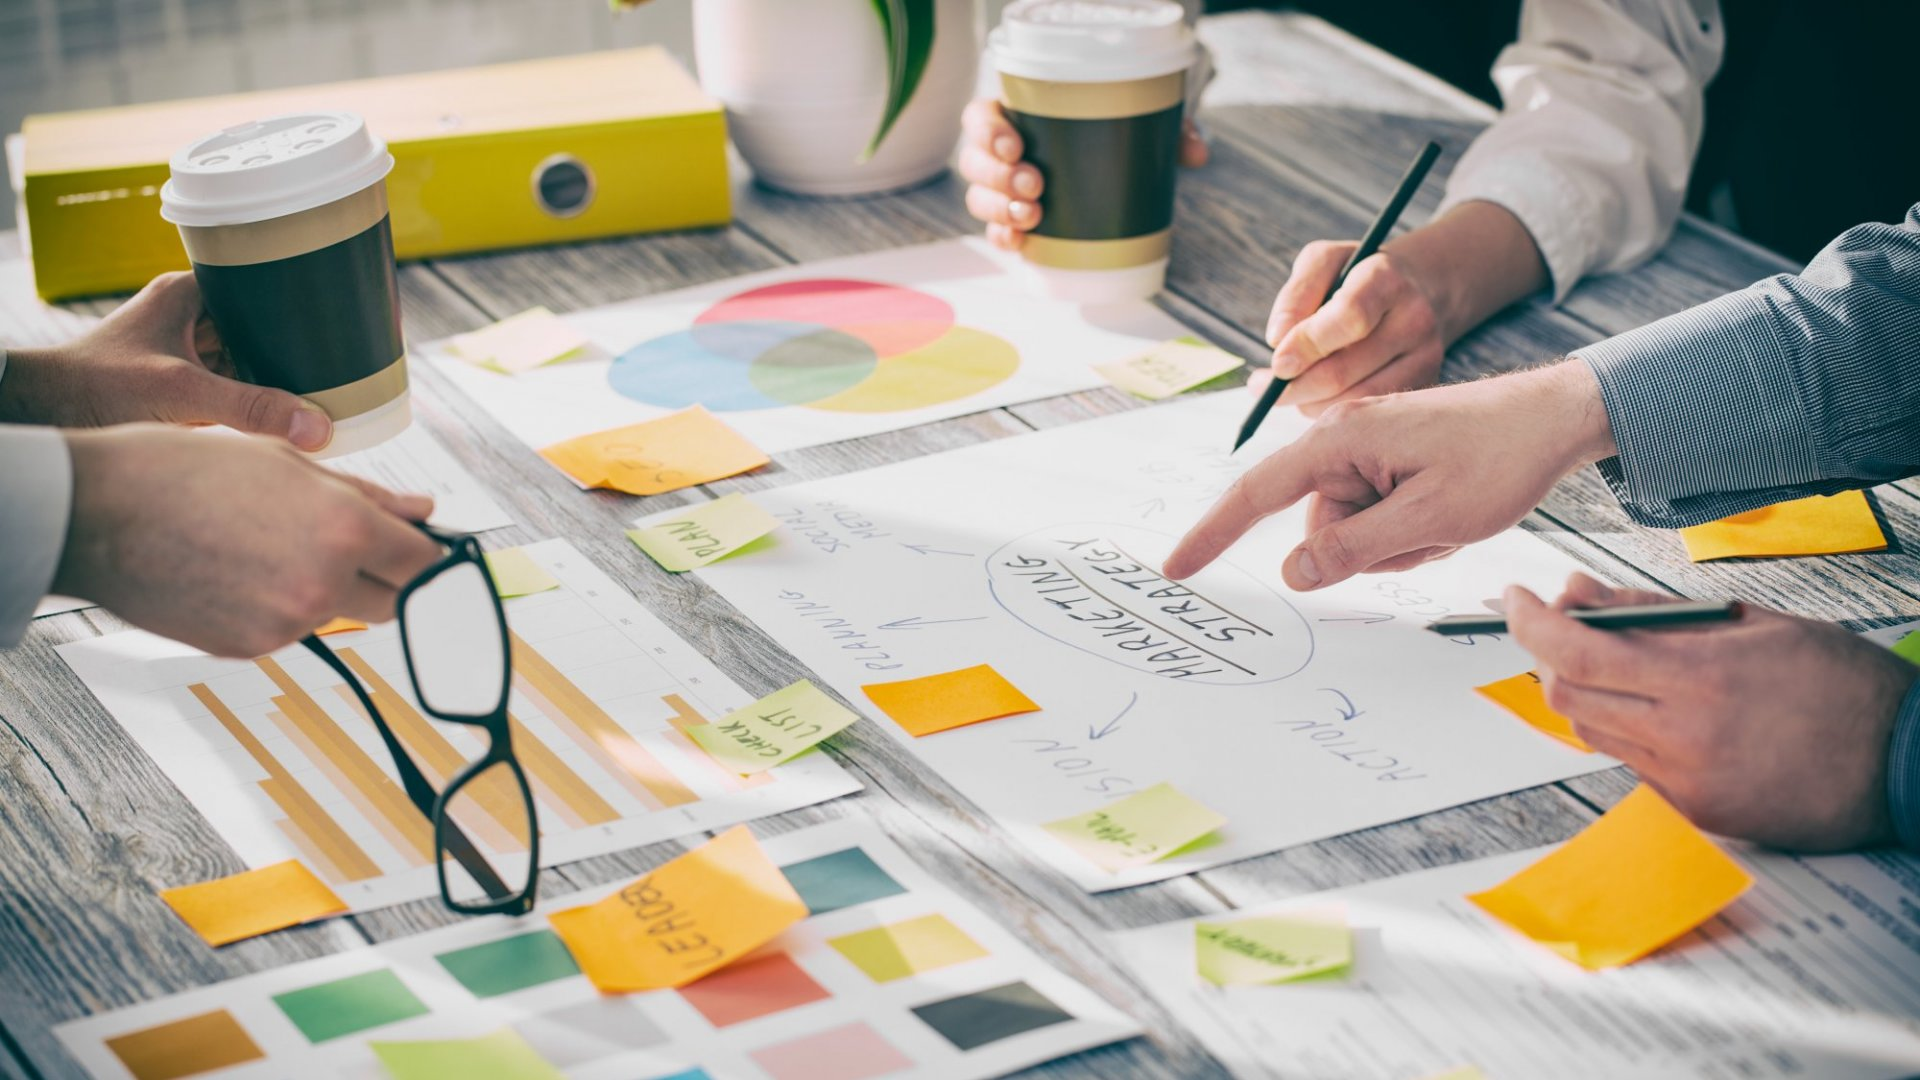 Want to Be a Better Problem-Solver and Opportunity-Finder? Strategic Design Thinking Holds the Key